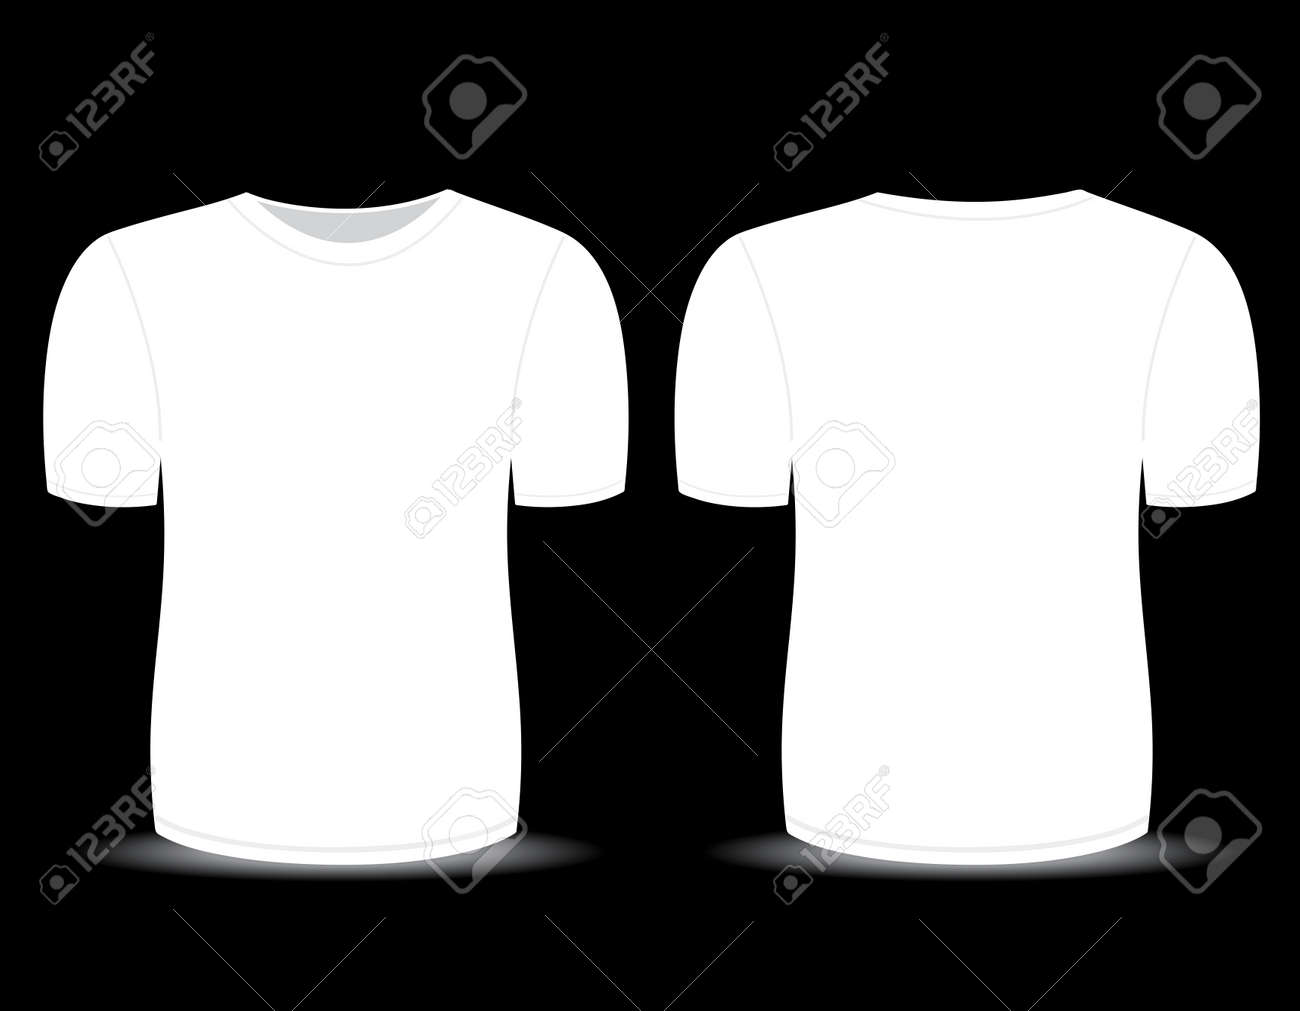 c6174054 Blank t-shirt white template for men (front and back views) Stock Vector